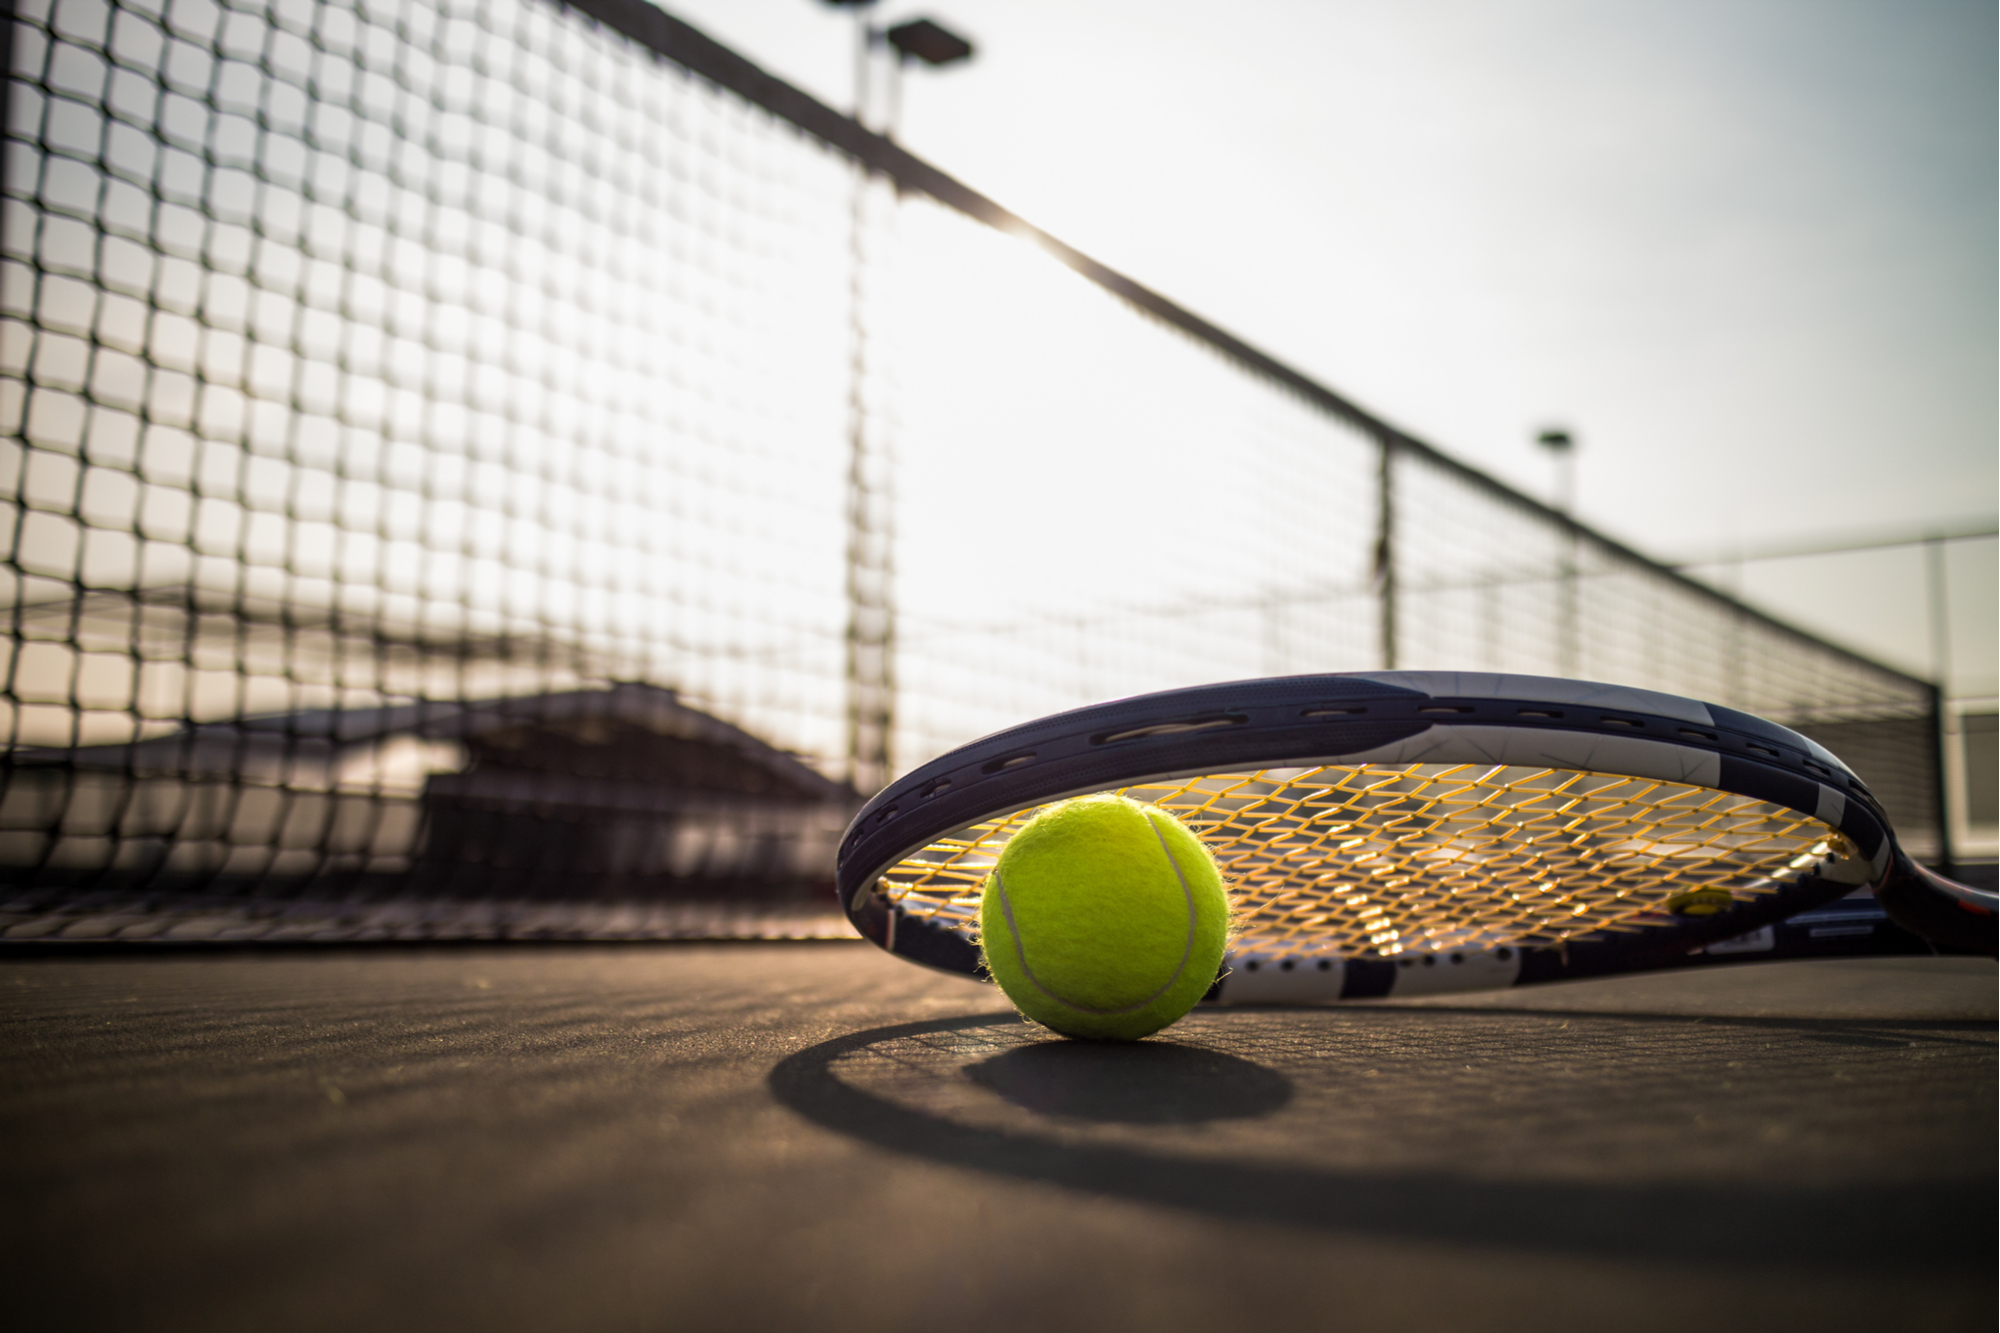 Welcome to Mackay Tennis, where we have a ball of a time    Join the fun with weekly fixtures